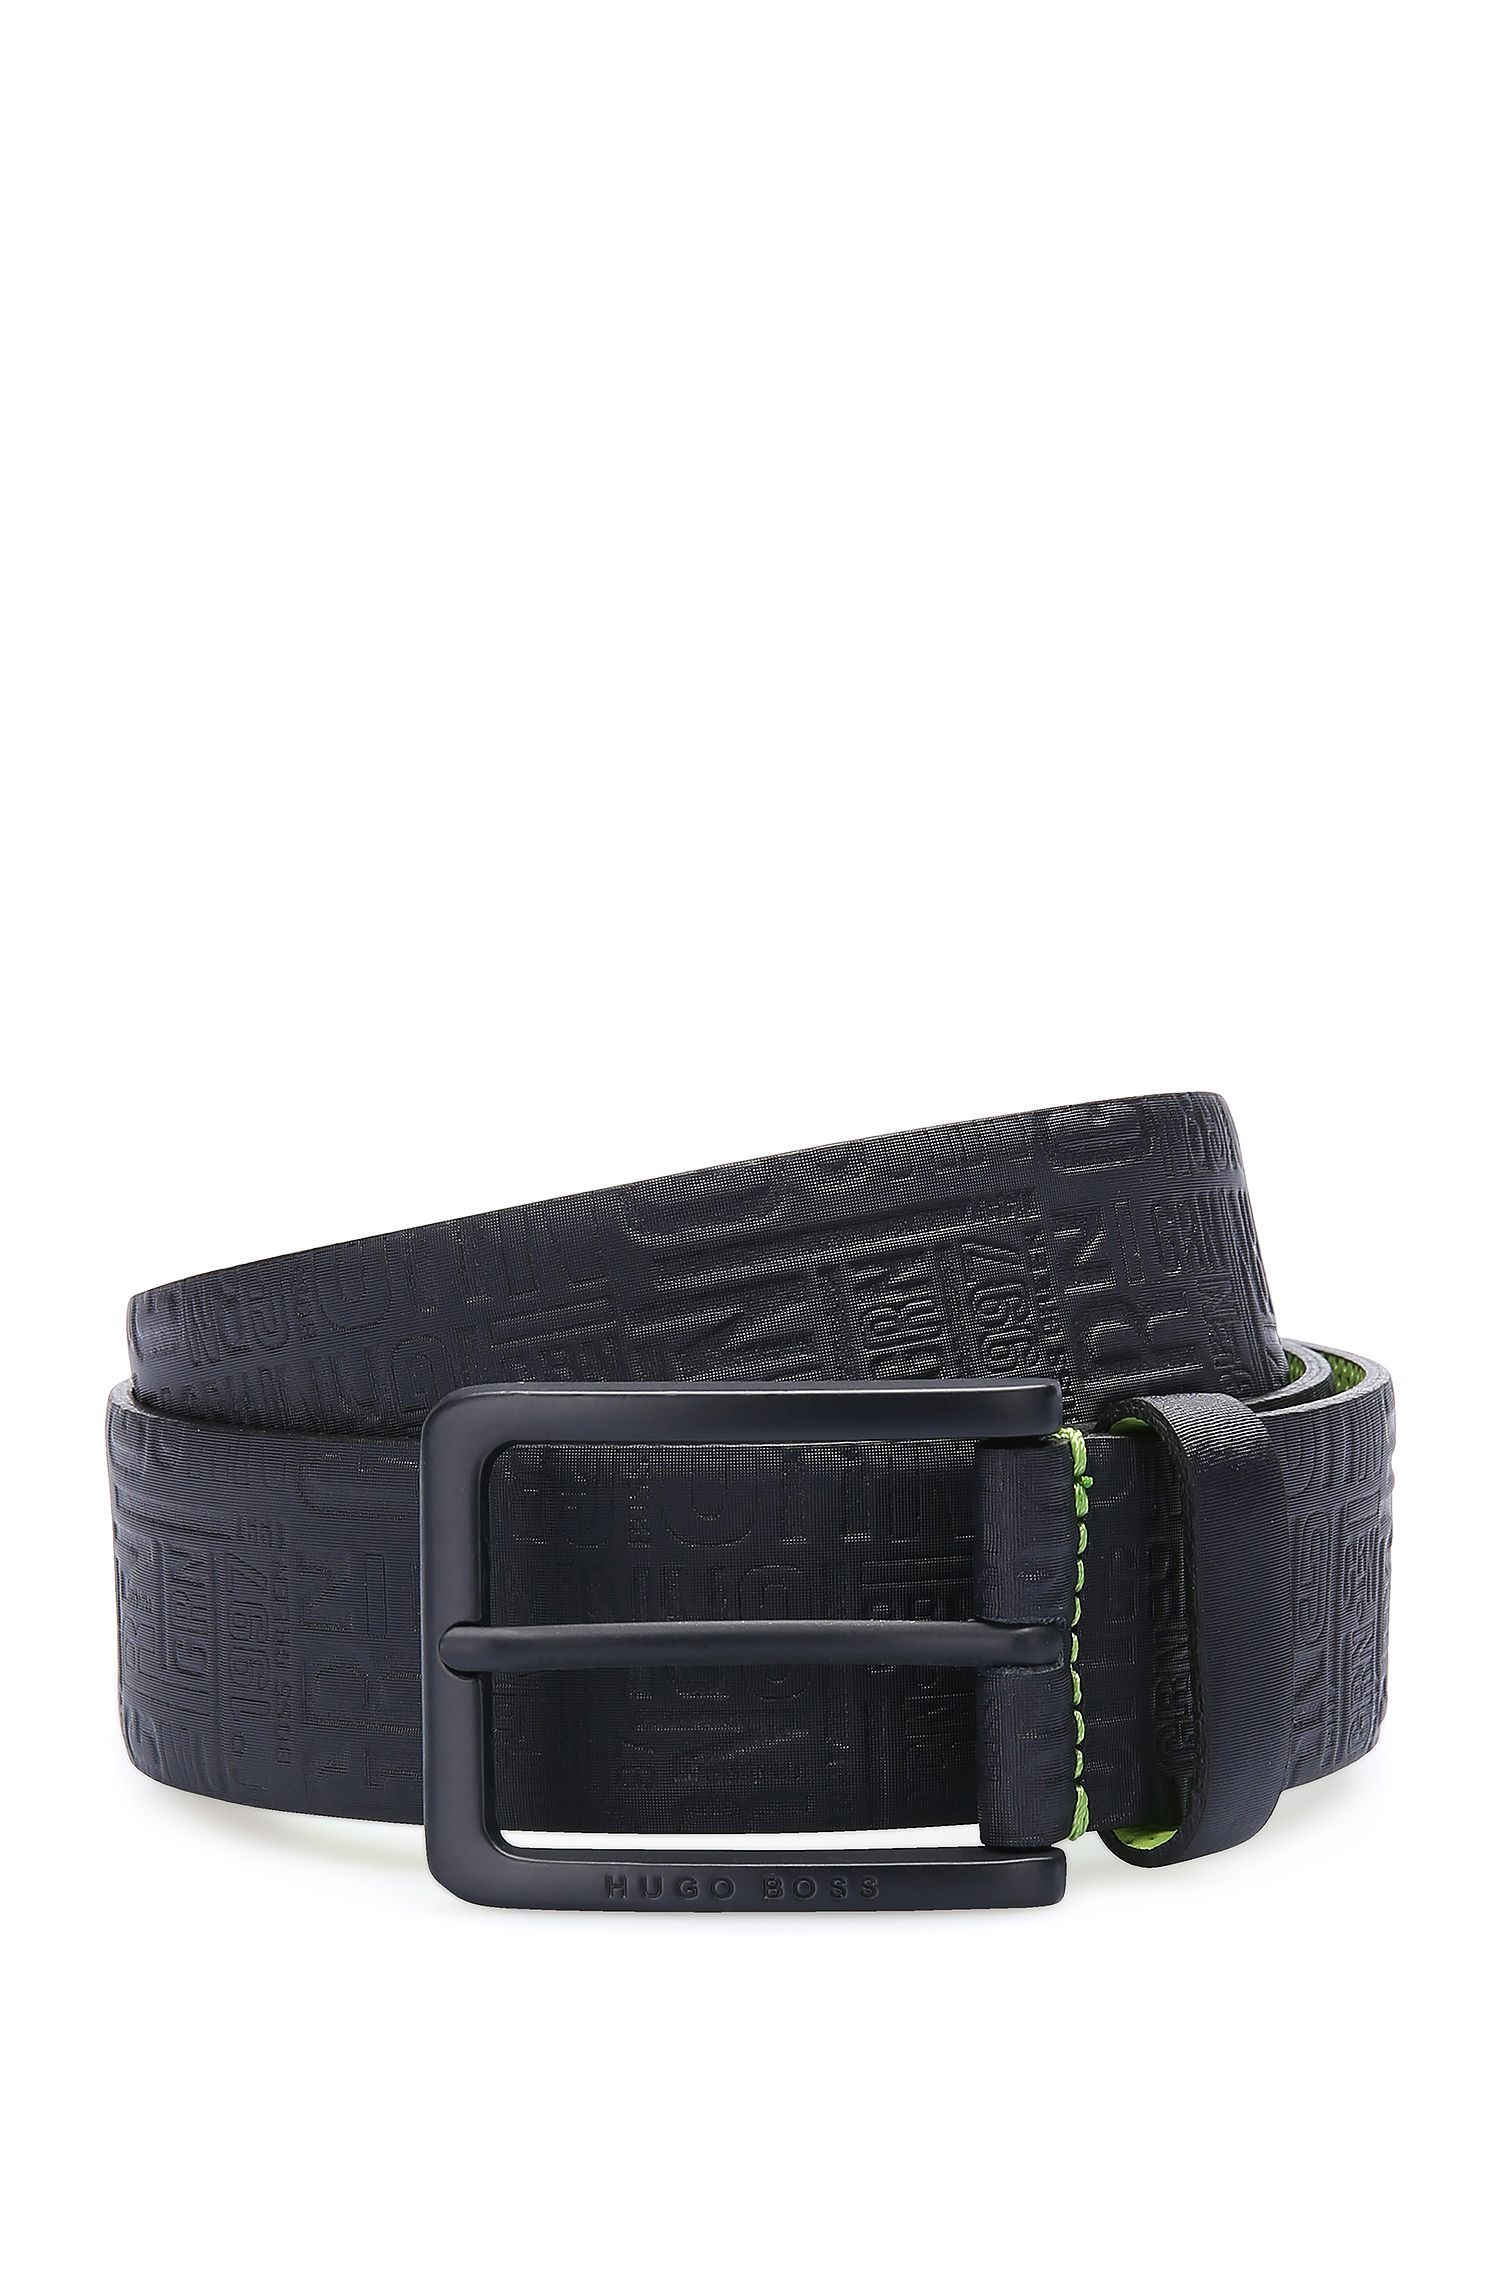 Leather belt with distinctive embossing: 'Tuscon_Sz35_ltem'